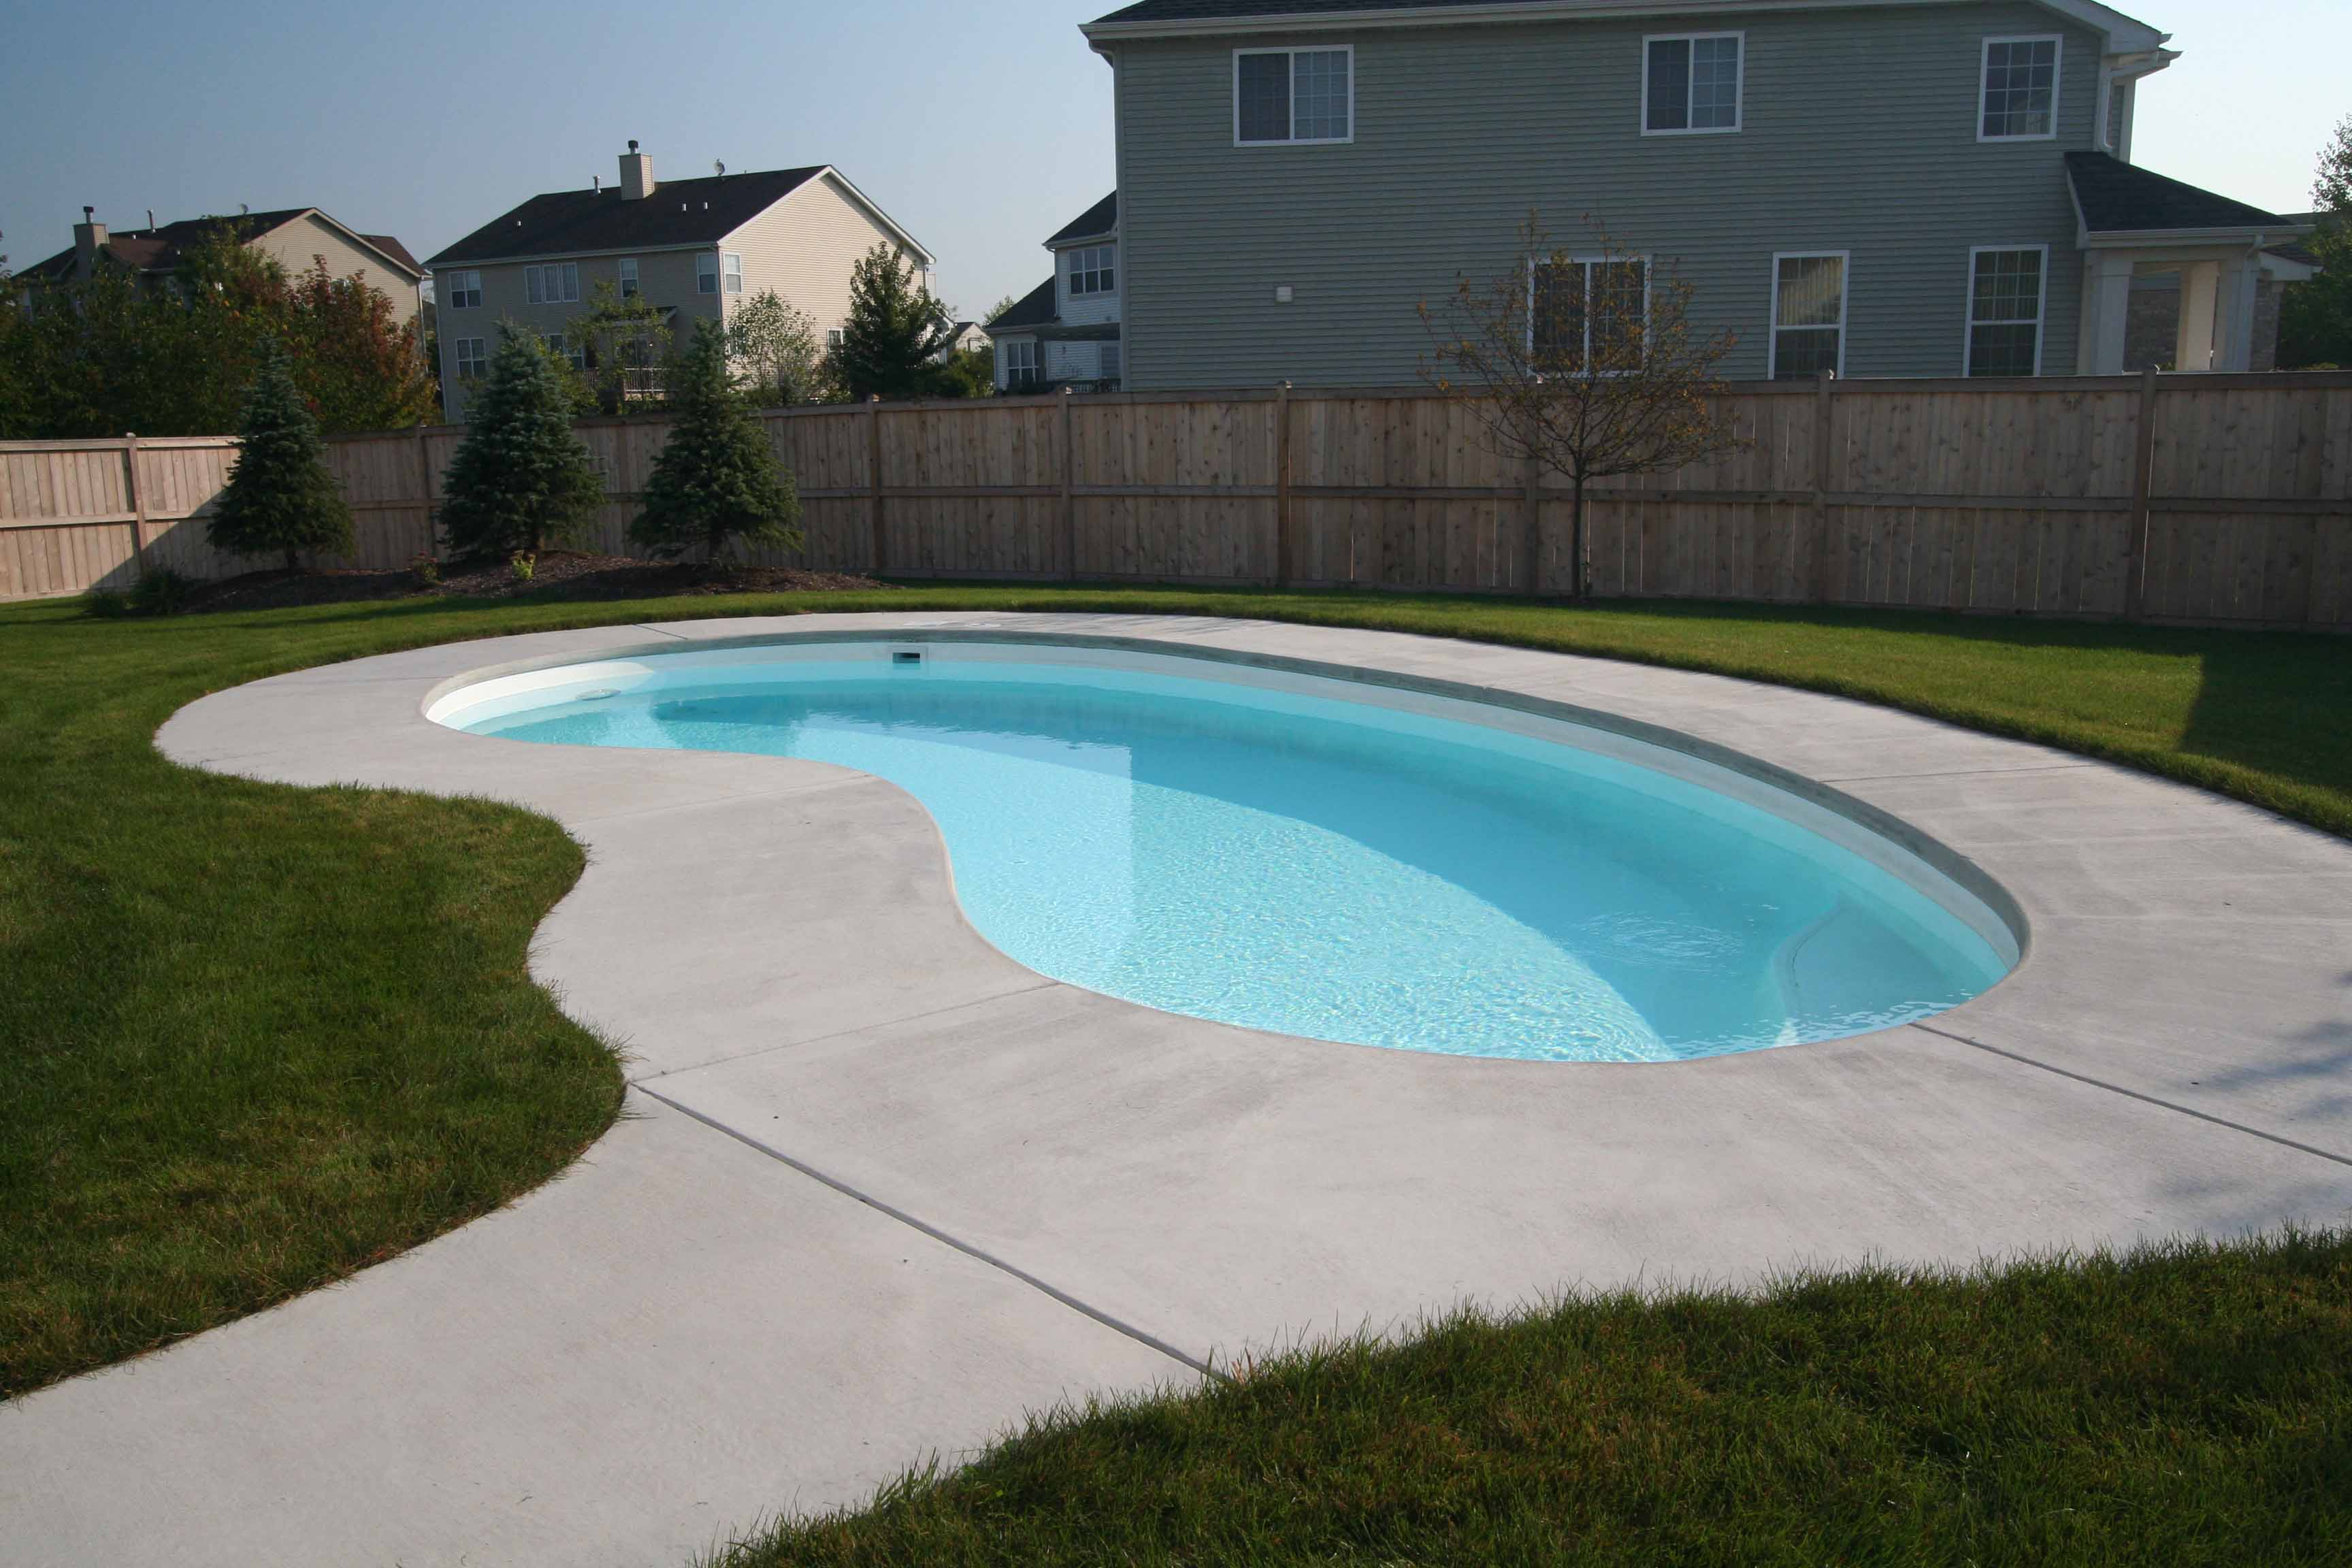 Fiberglass Swimming Pool Designs fiberglass pools pittsburgh pa Signature Pools 16 X 32 Aloha Montego Model In White Finish Built In